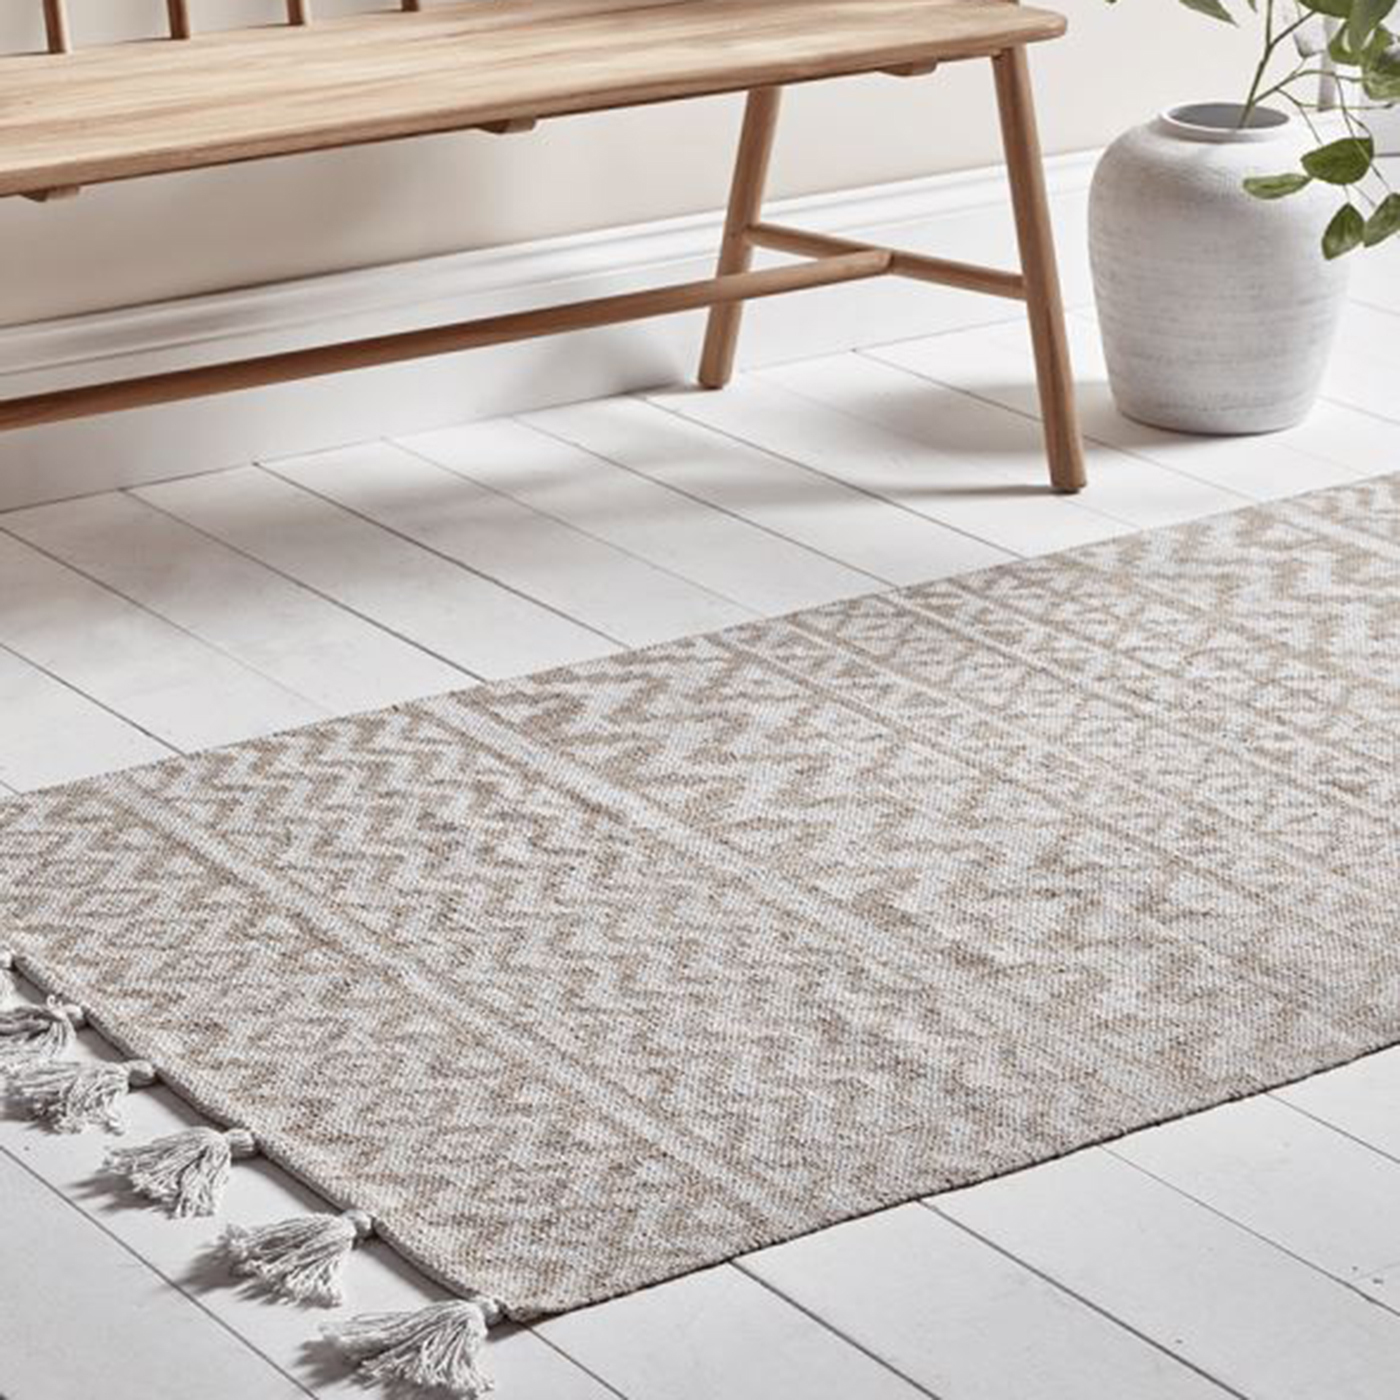 Chevron Tassel Runner, £75 ($95), Cox & Cox, UK and Europe delivery